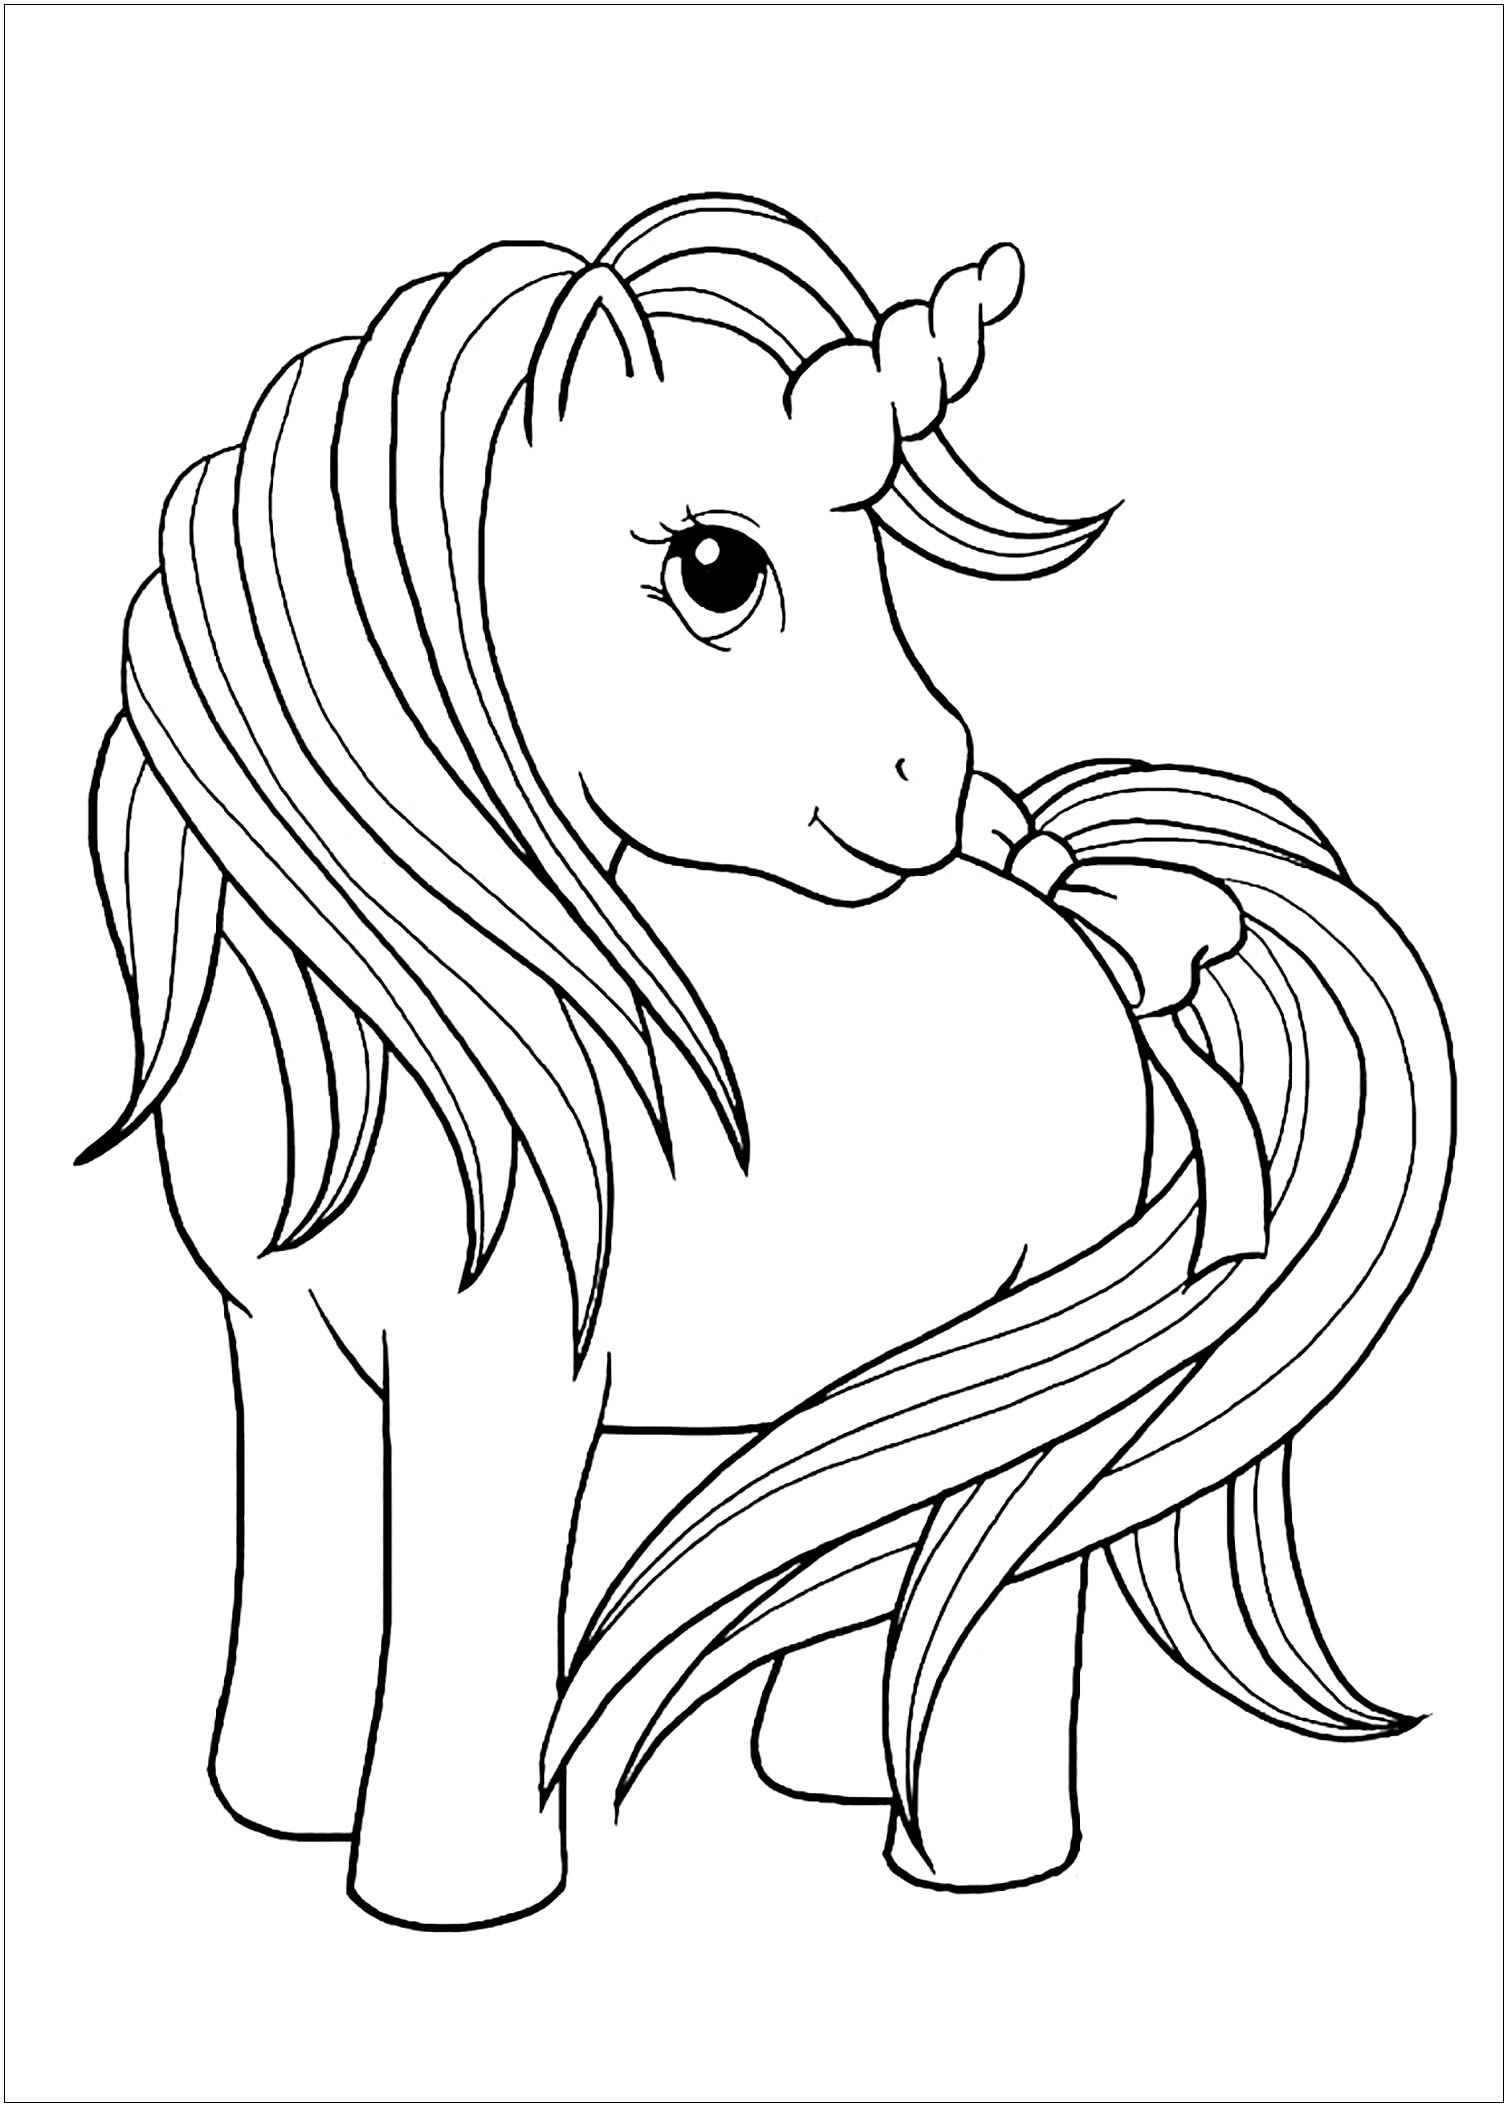 Free Unicorns coloring page to print and color